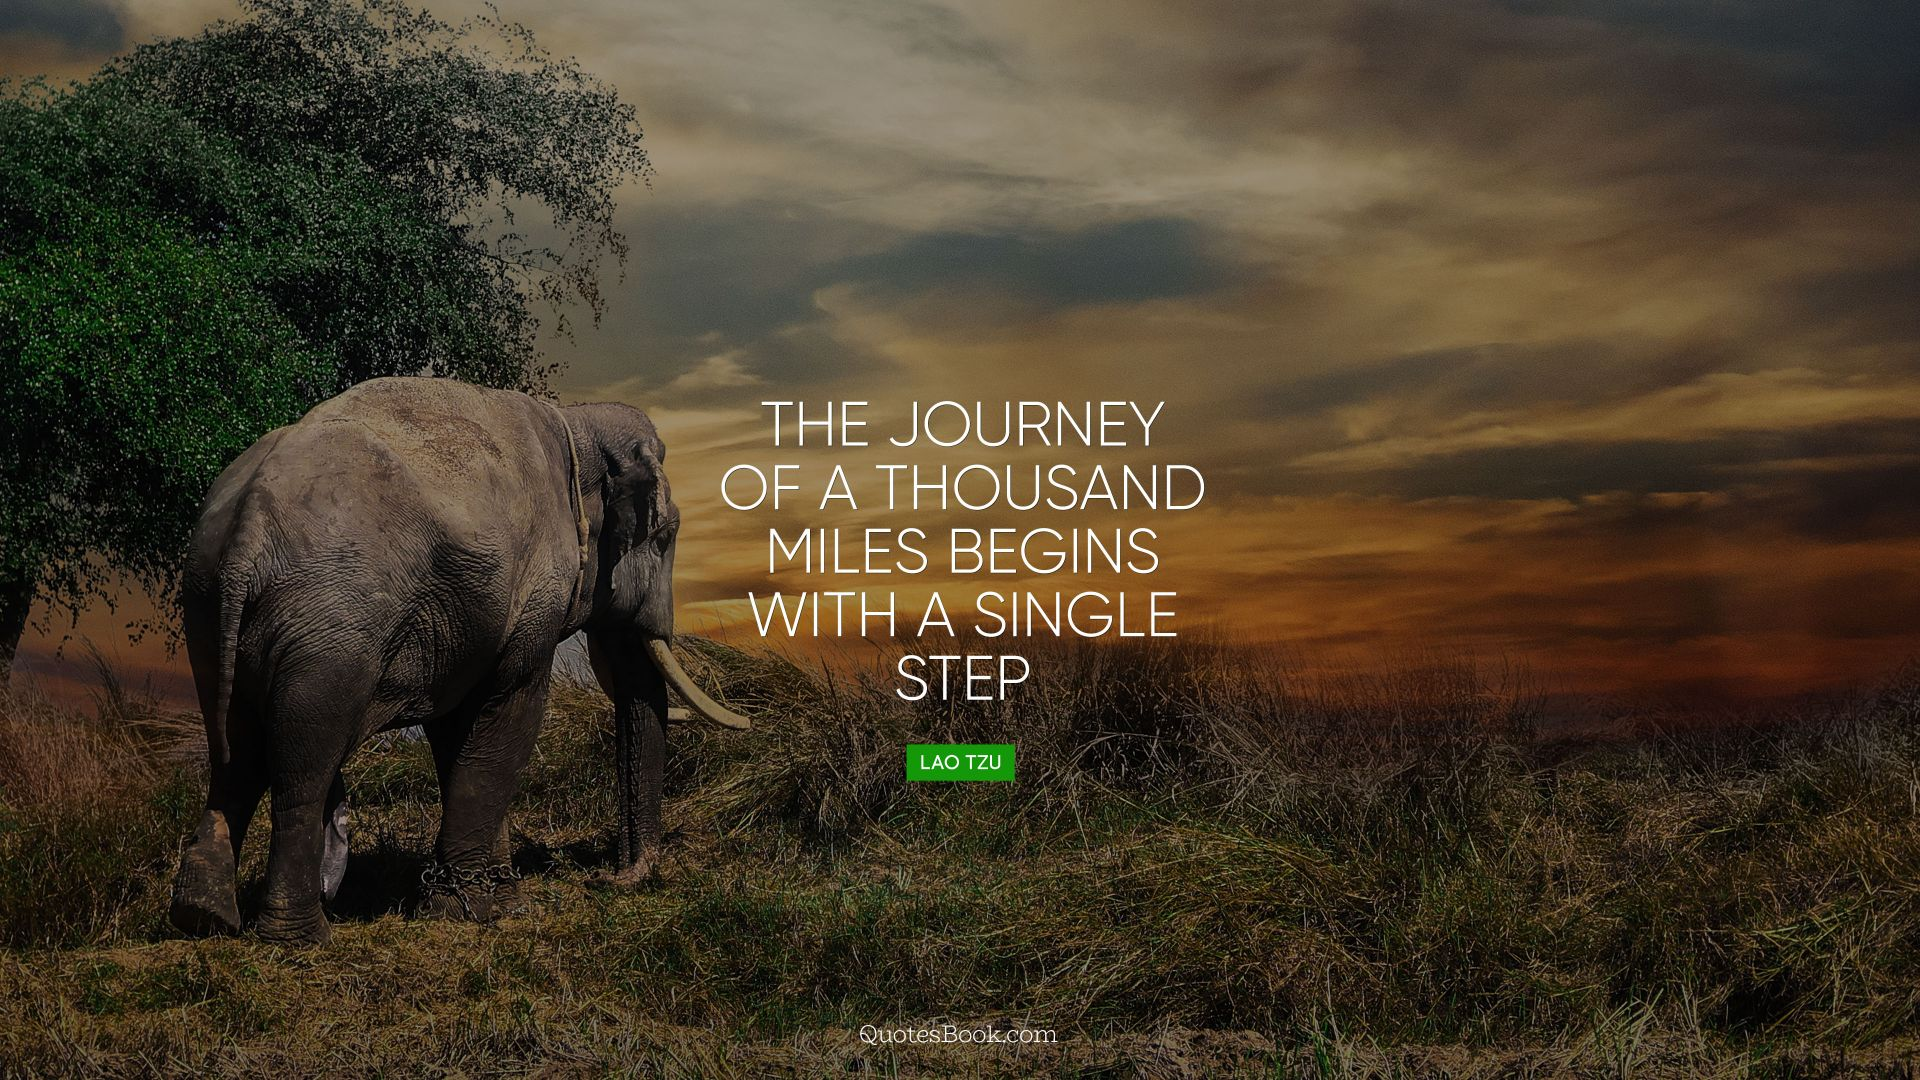 The journey of a thousand miles begins with a single step. - Quote by Lao Tzu